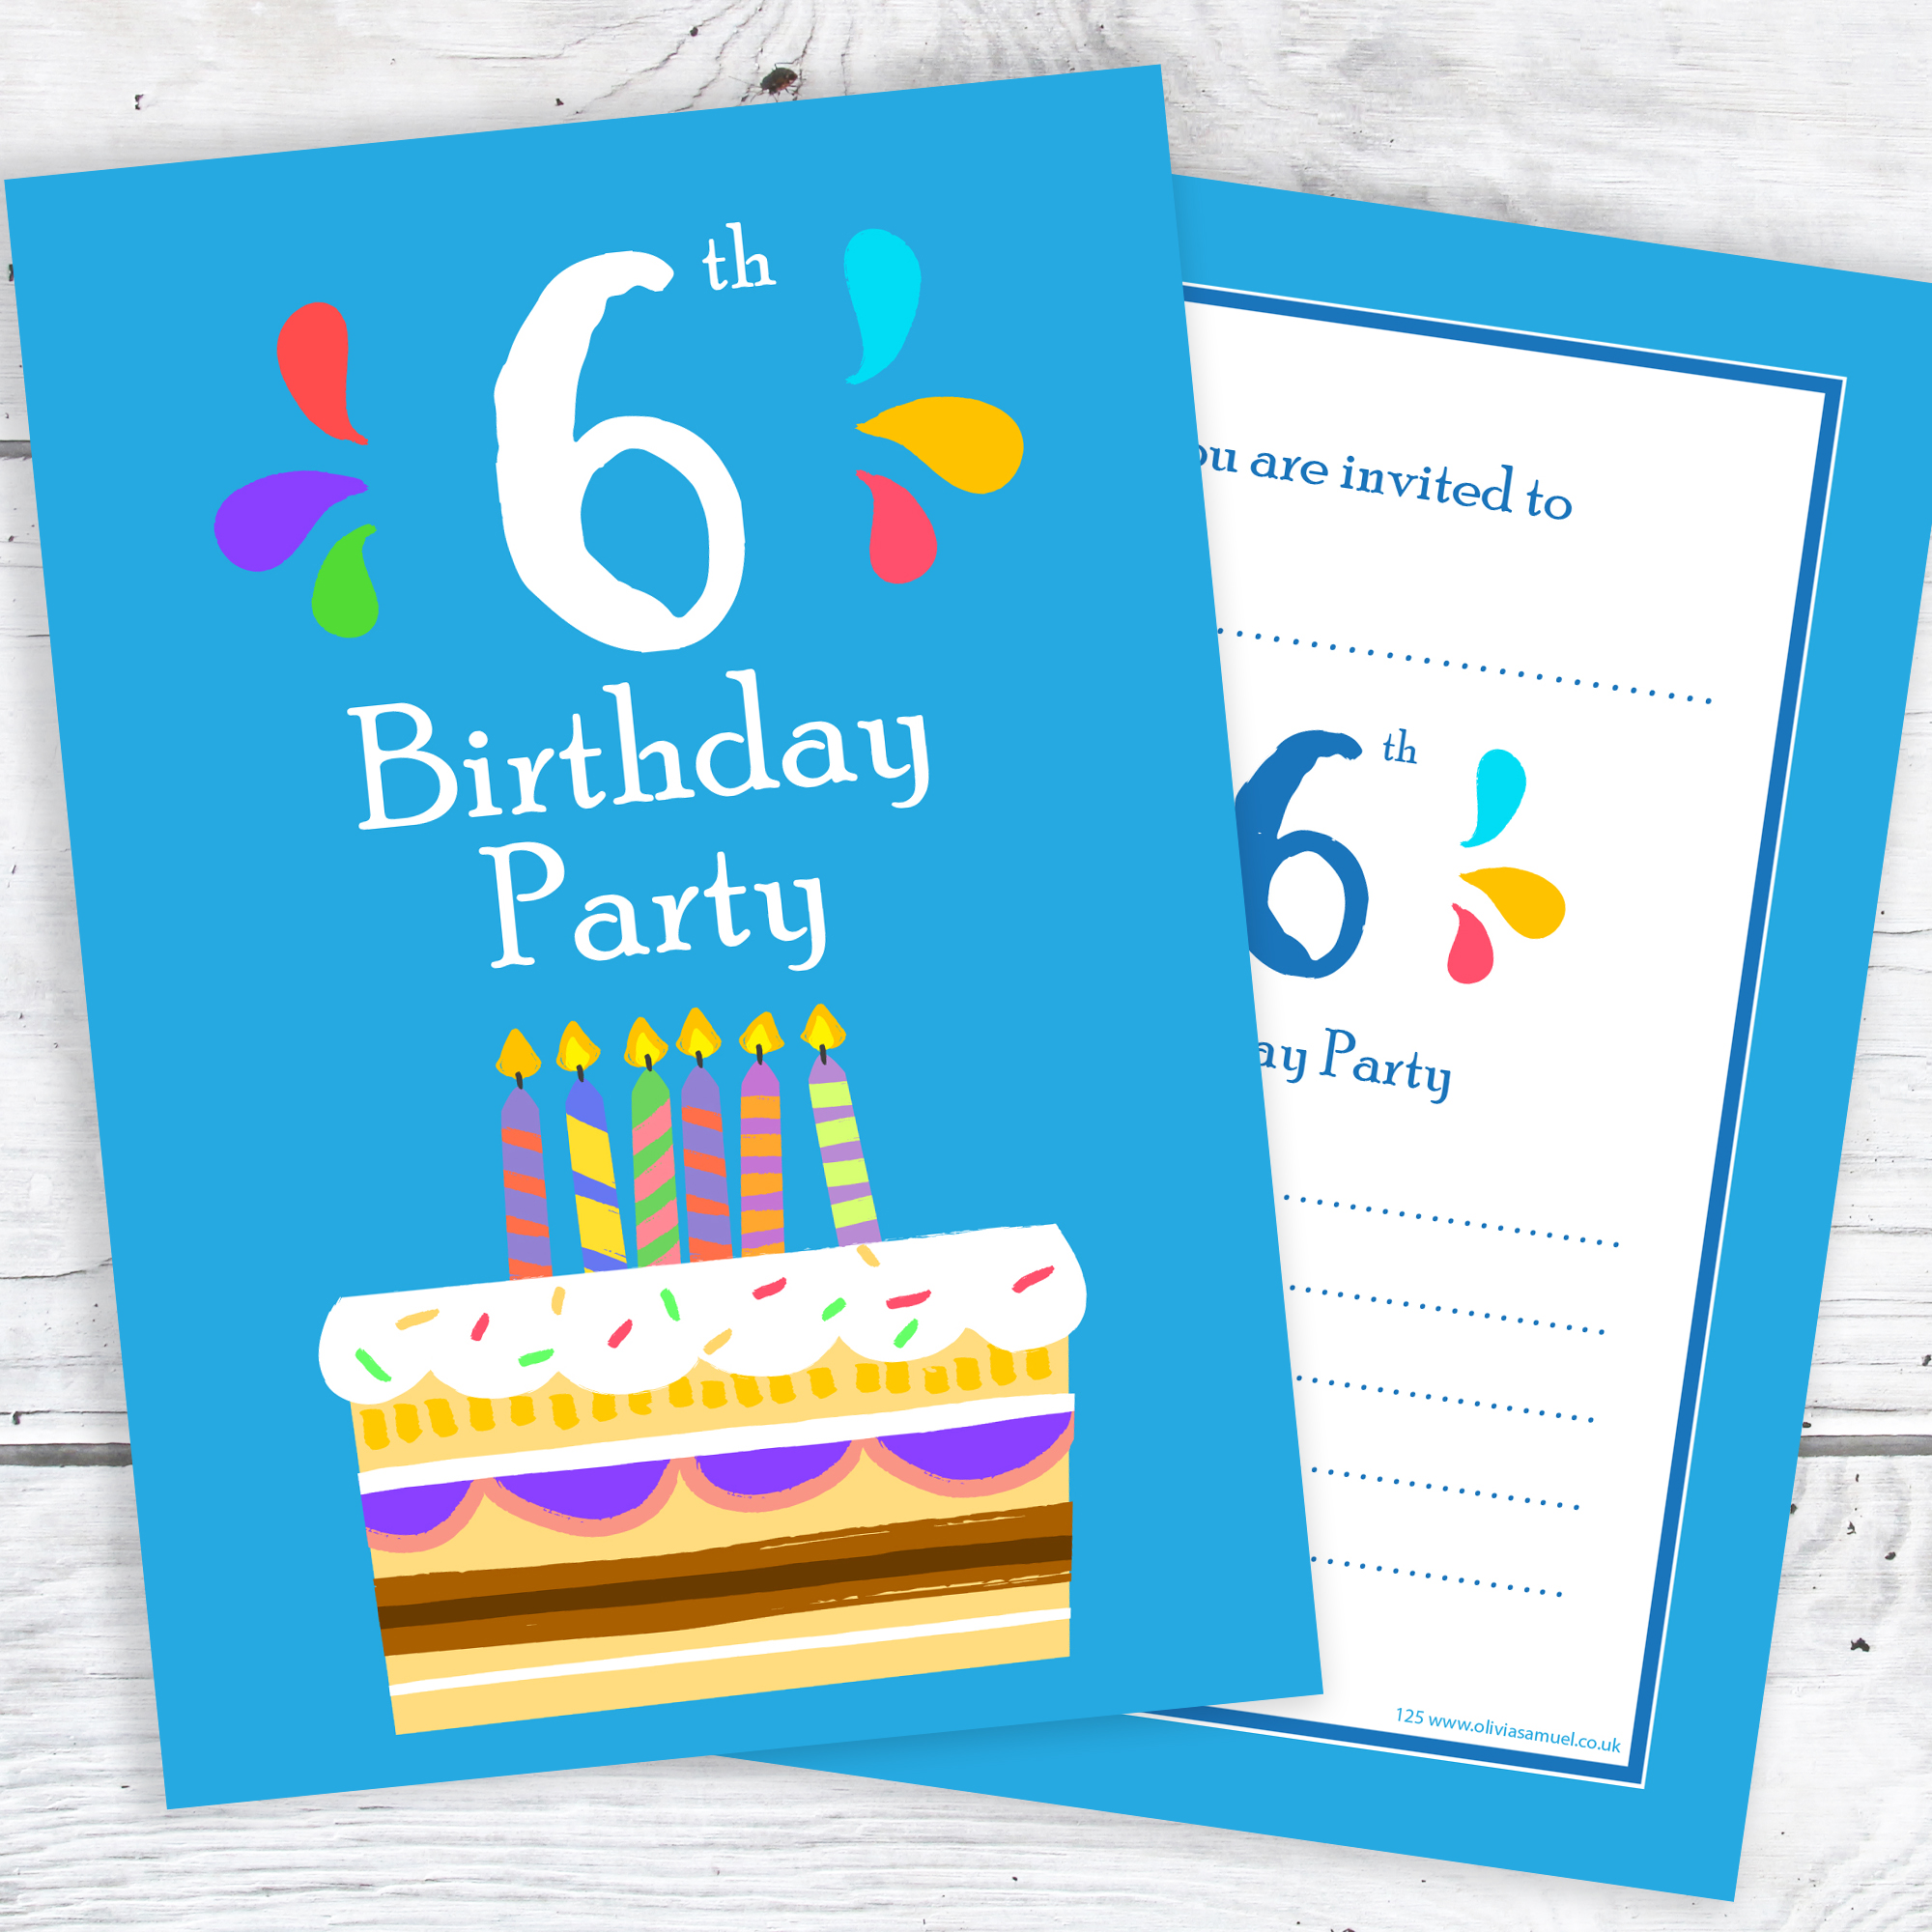 6th birthday party invitations  u2013 6 candle blue cake design